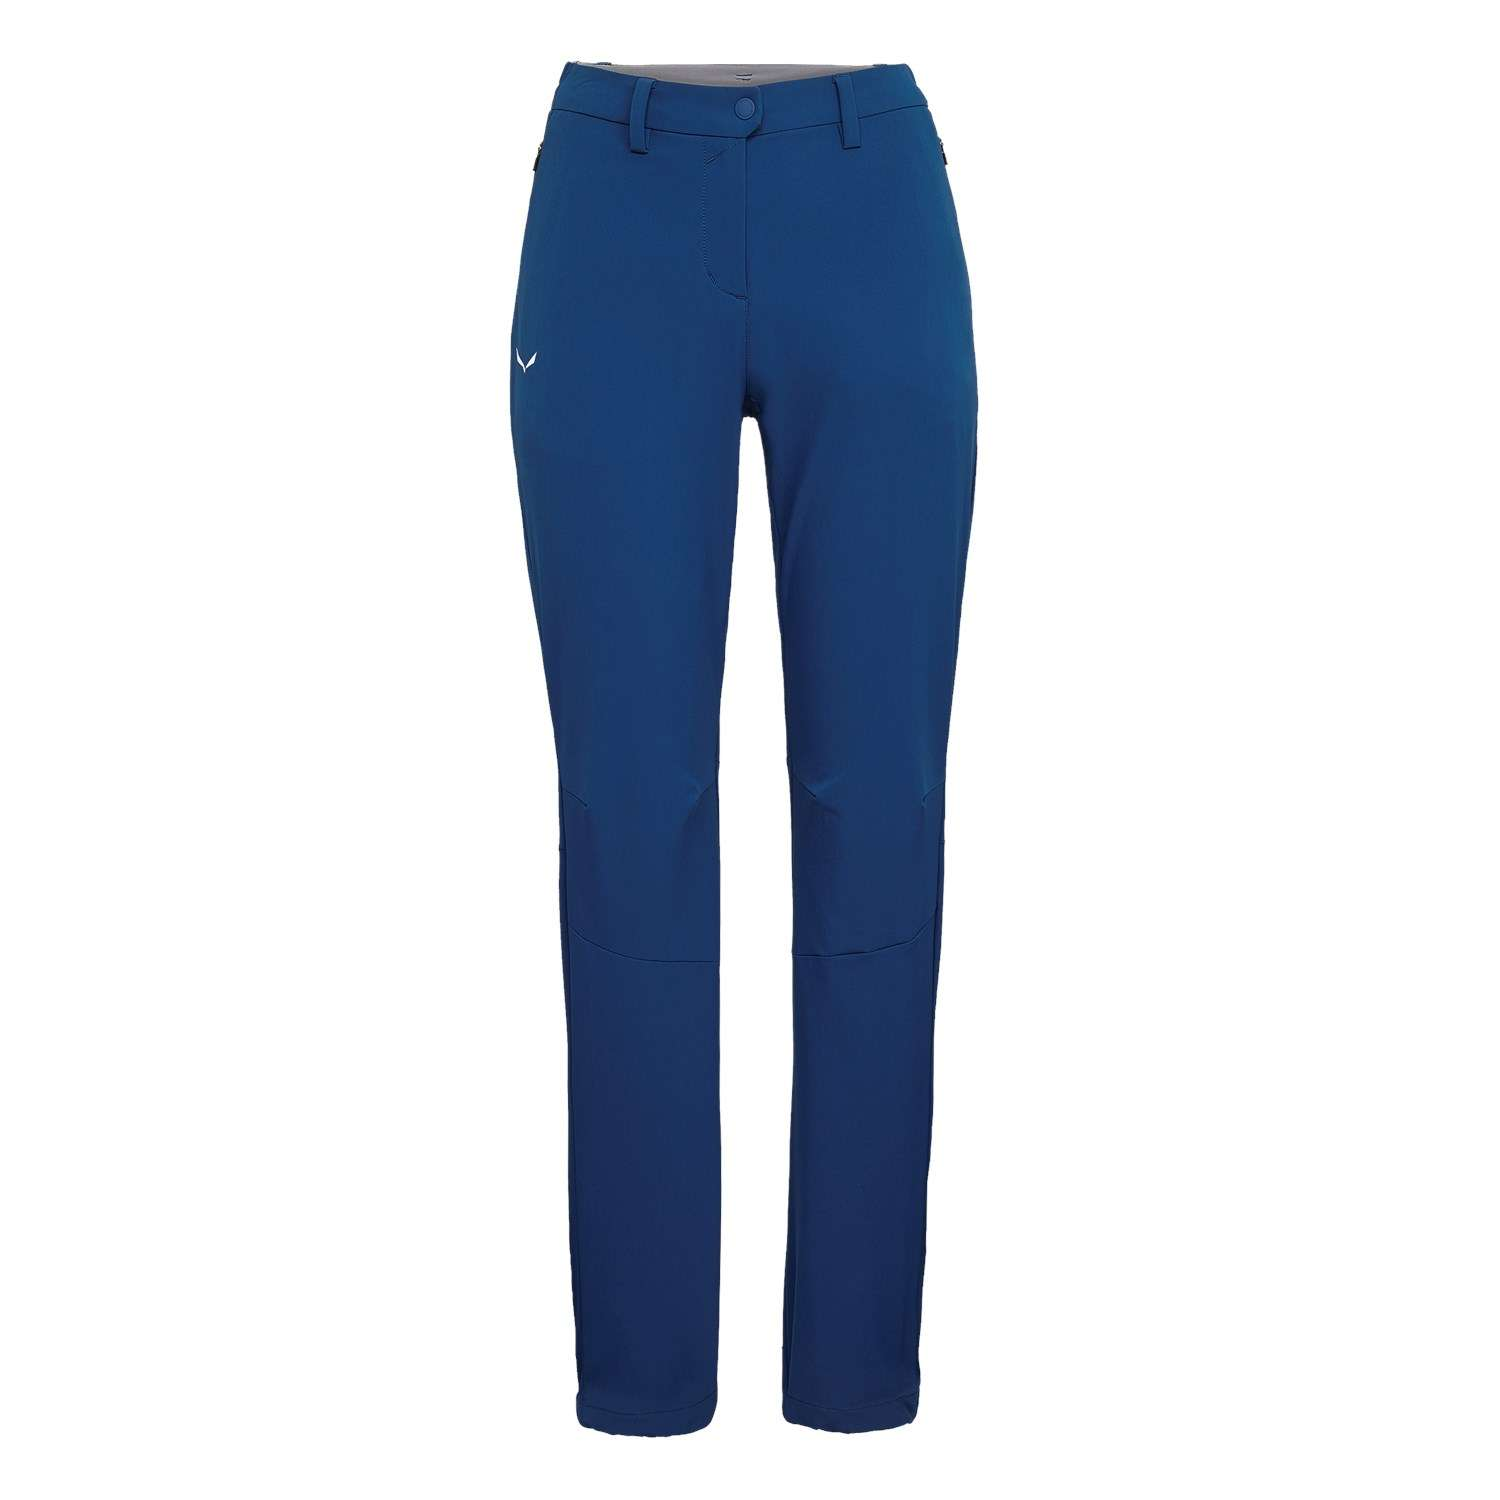 Black Pants Pants Women's Salewa Trekking Outdoor Puez Dst